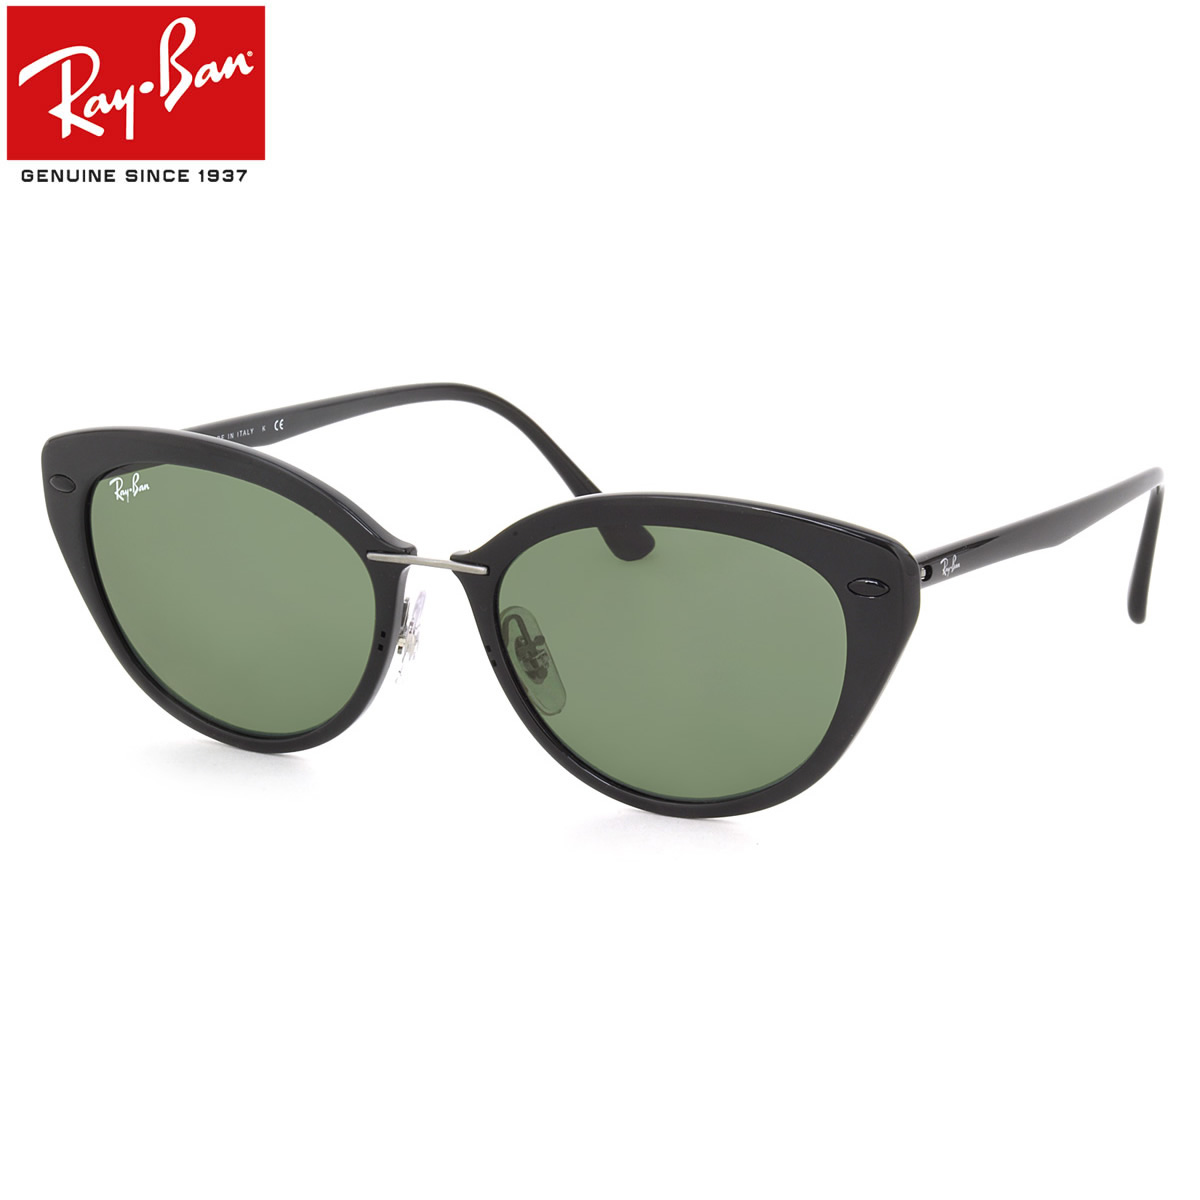 2c0d8d3b40 The Light Ray (light lei) series that realized lightweighting in Ray-Ban  TECH (Ray-Ban technical center) which let a tradition of Ray-Ban and the  latest ...